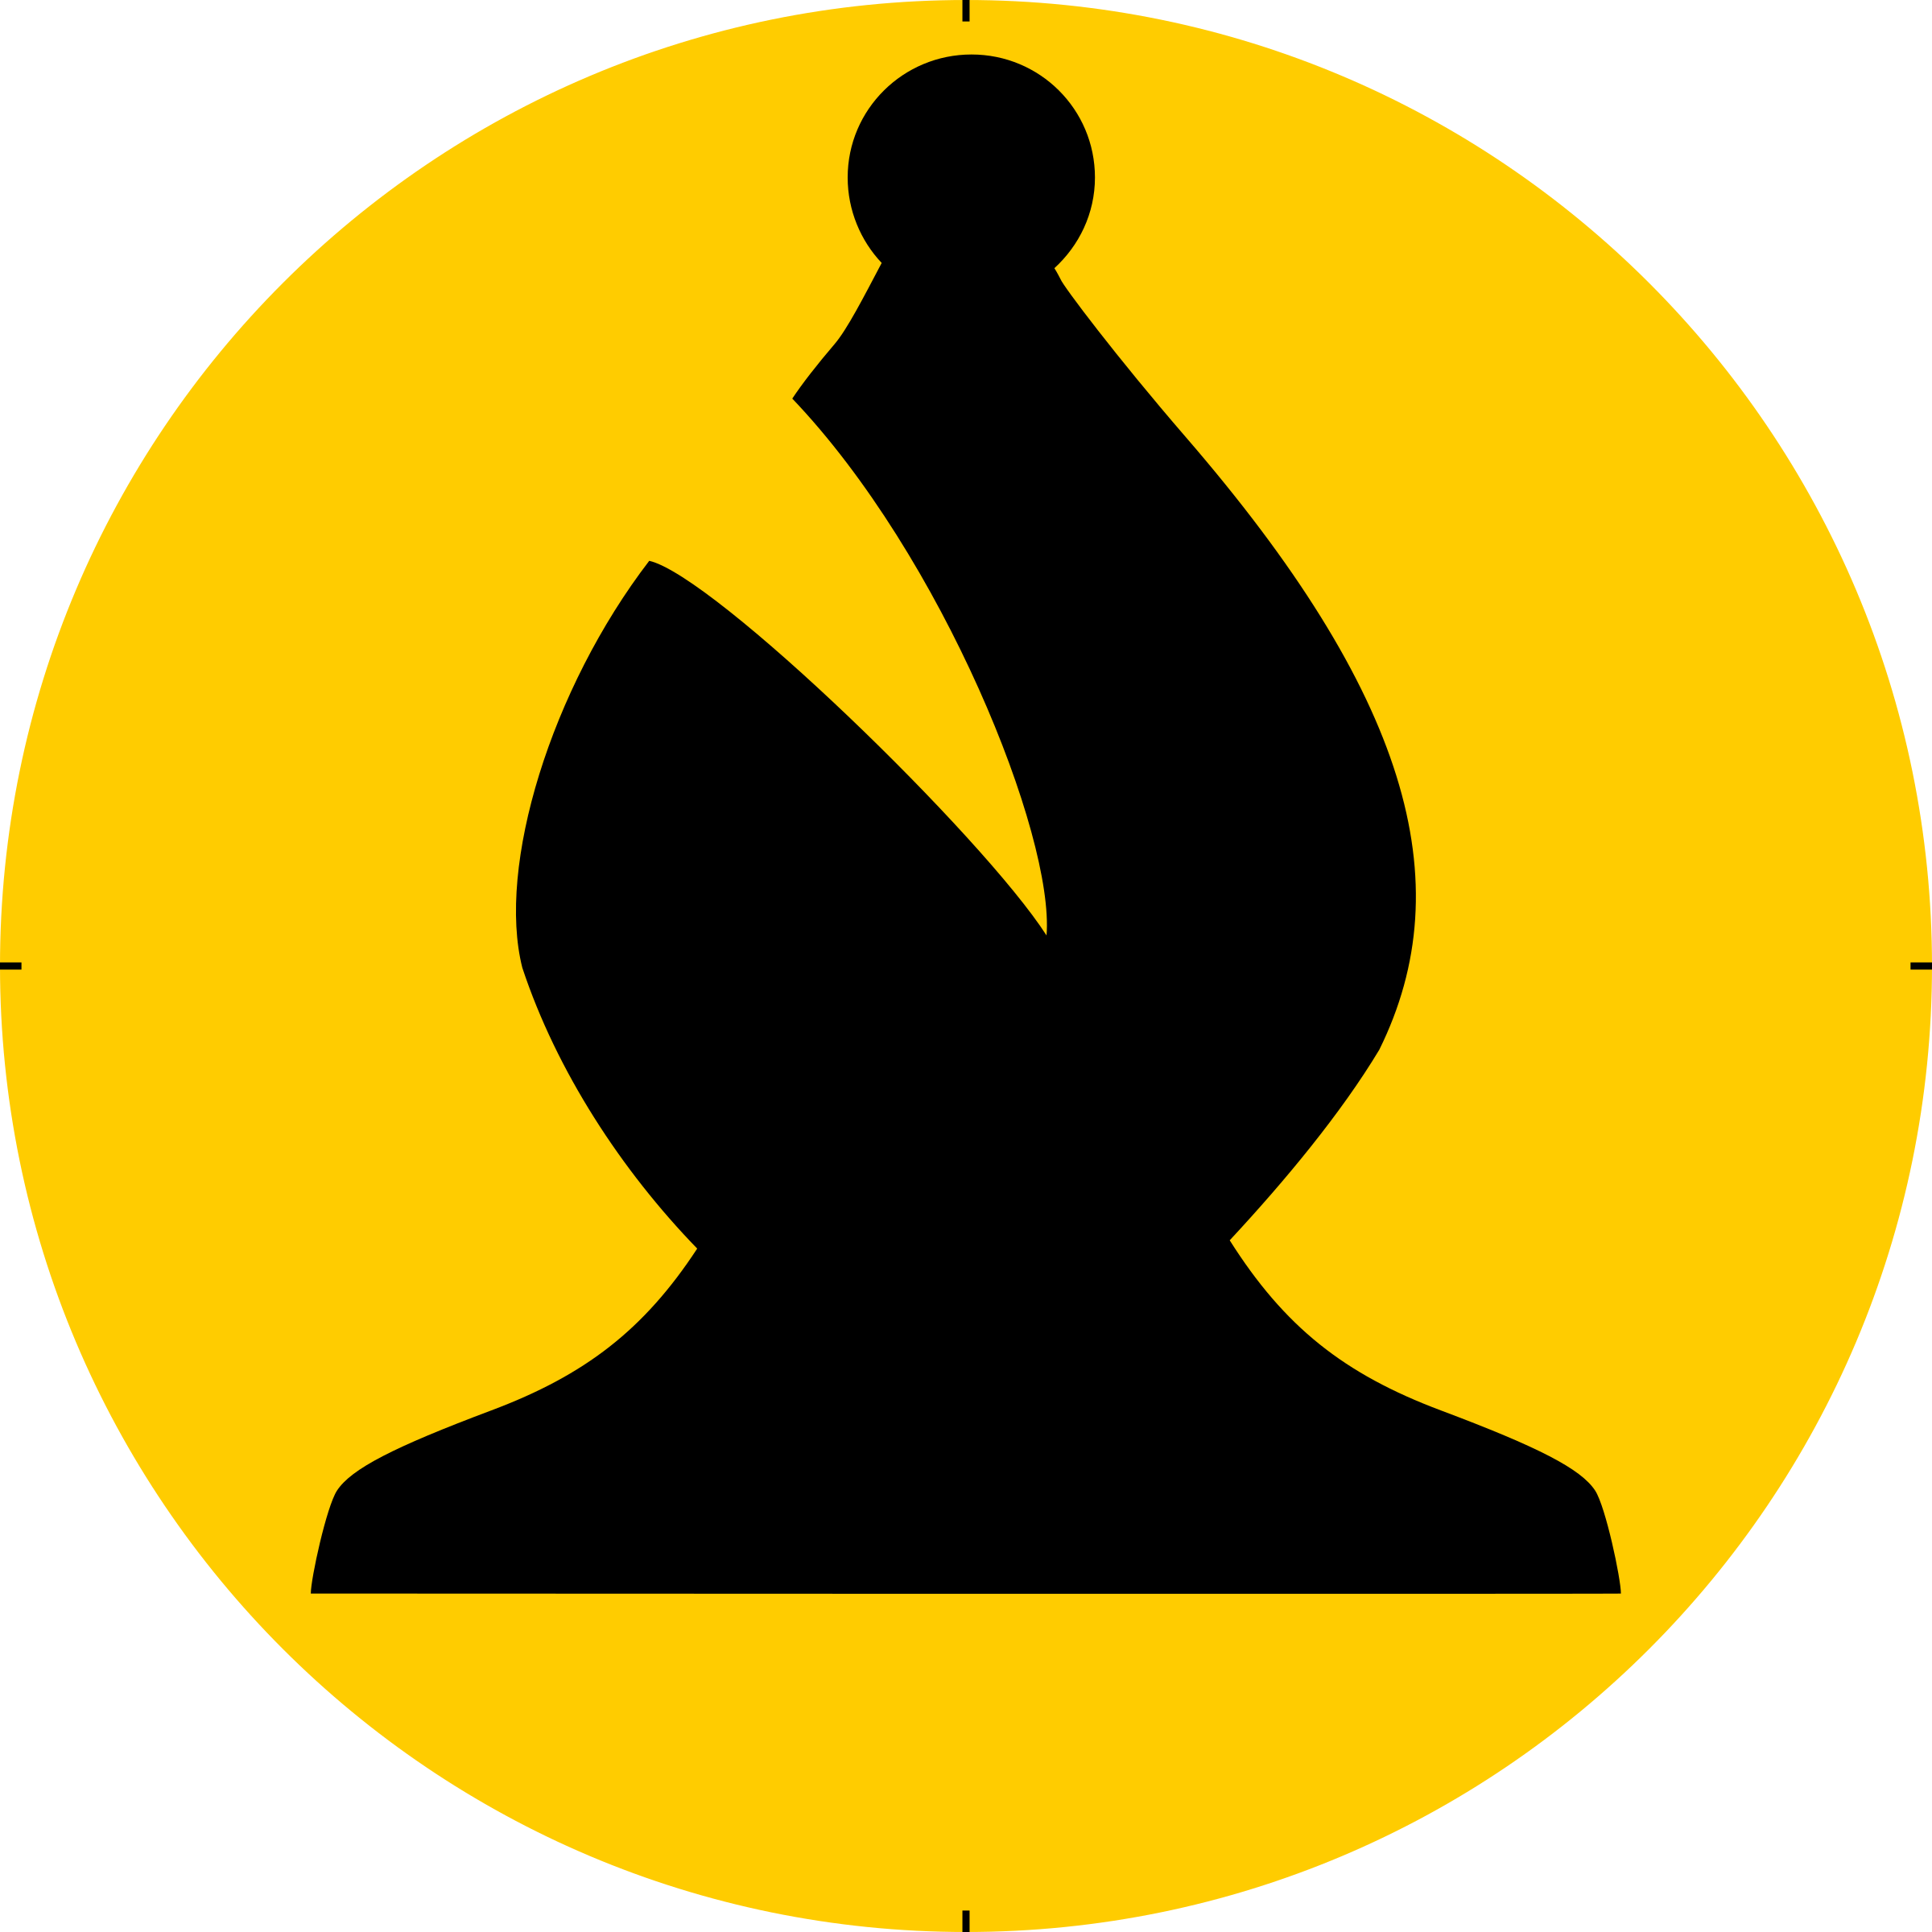 Chess Piece Symbol – Black Bishop – Alfil Negro by DG-RA